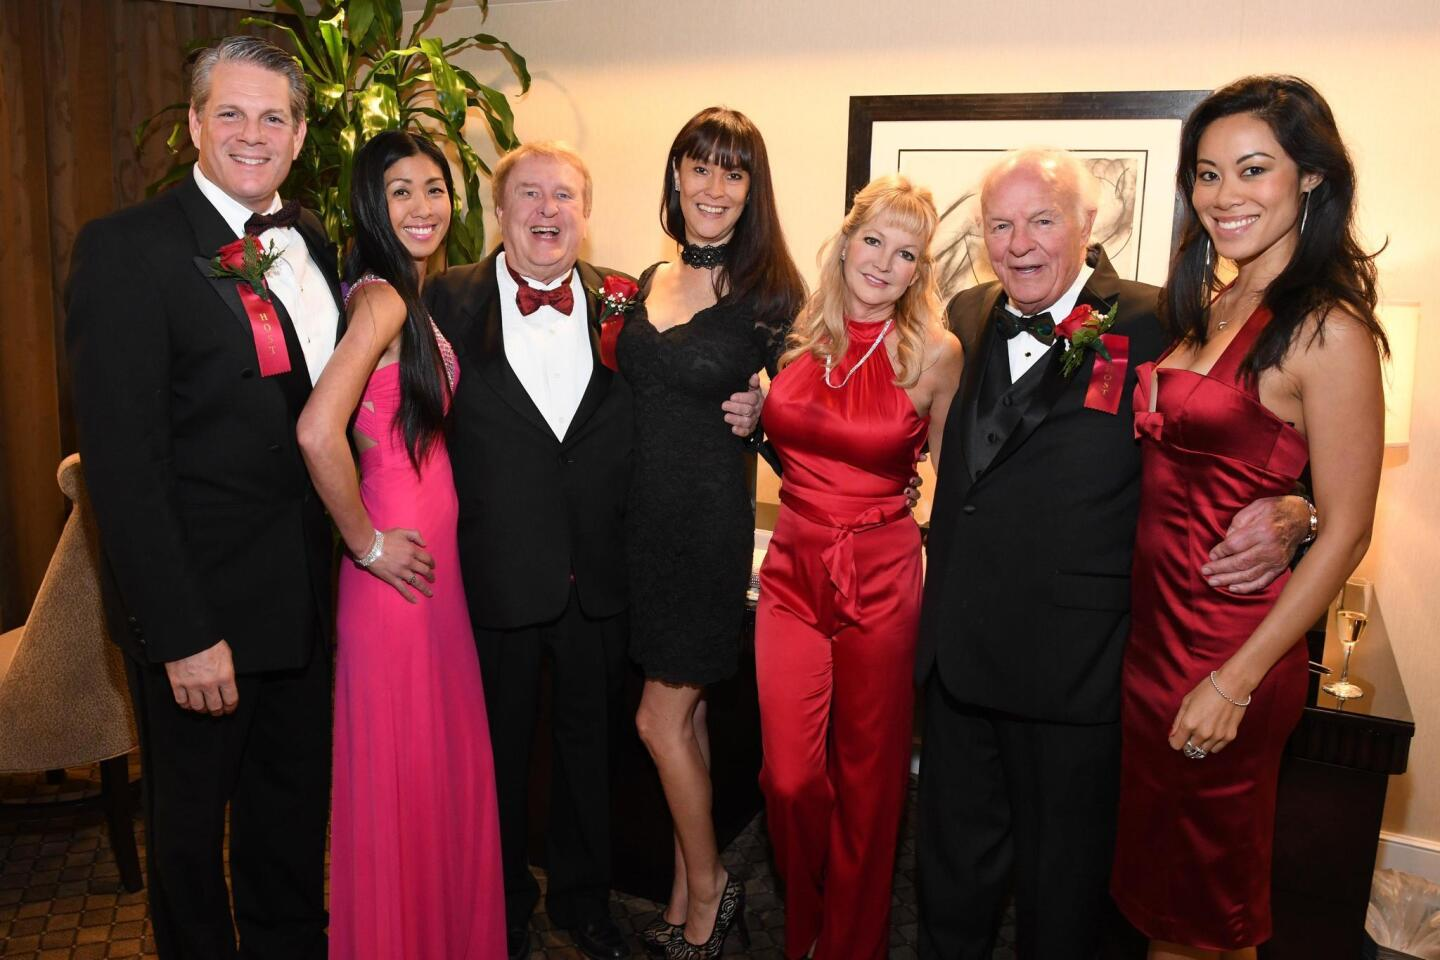 Realtor Tom Groff hosted his annual Christmas Celebration Dec. 16, 2016 at the Hilton Torrey Pines in La Jolla. Co-host Denny Sanford and hundreds of guests brought toys for distribution to several children's charities.